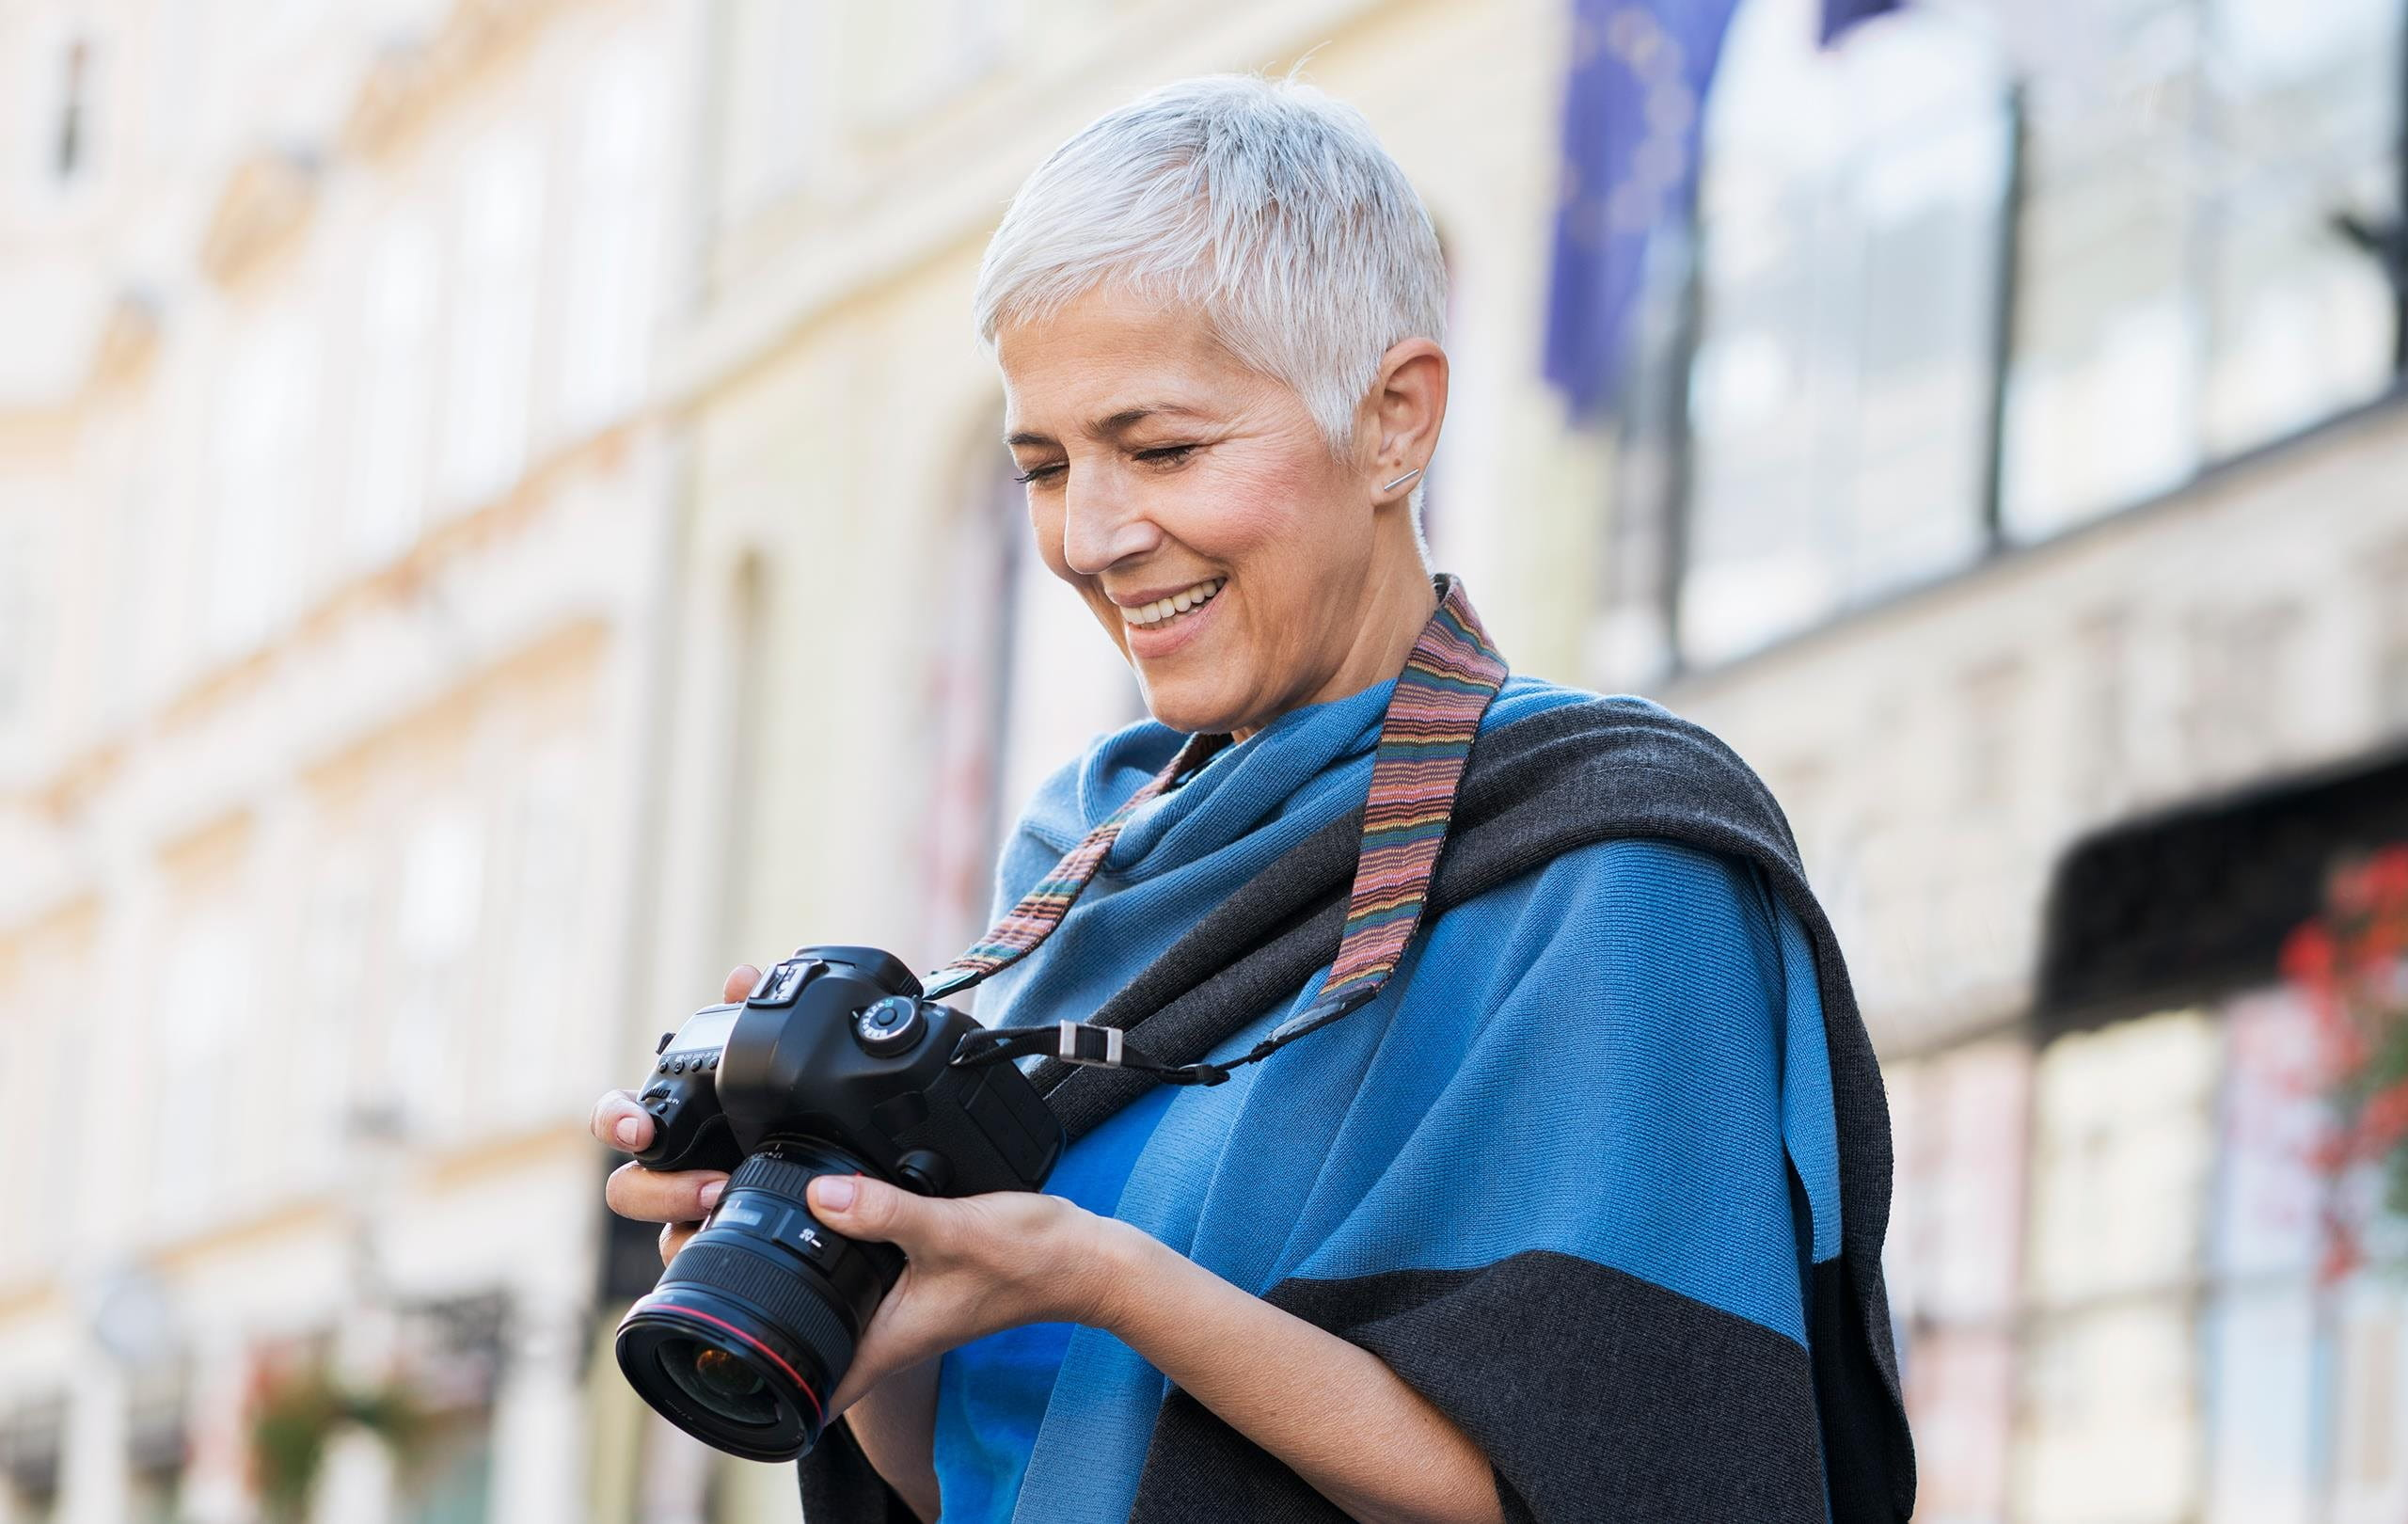 Woman standing in a town smiling at her camera